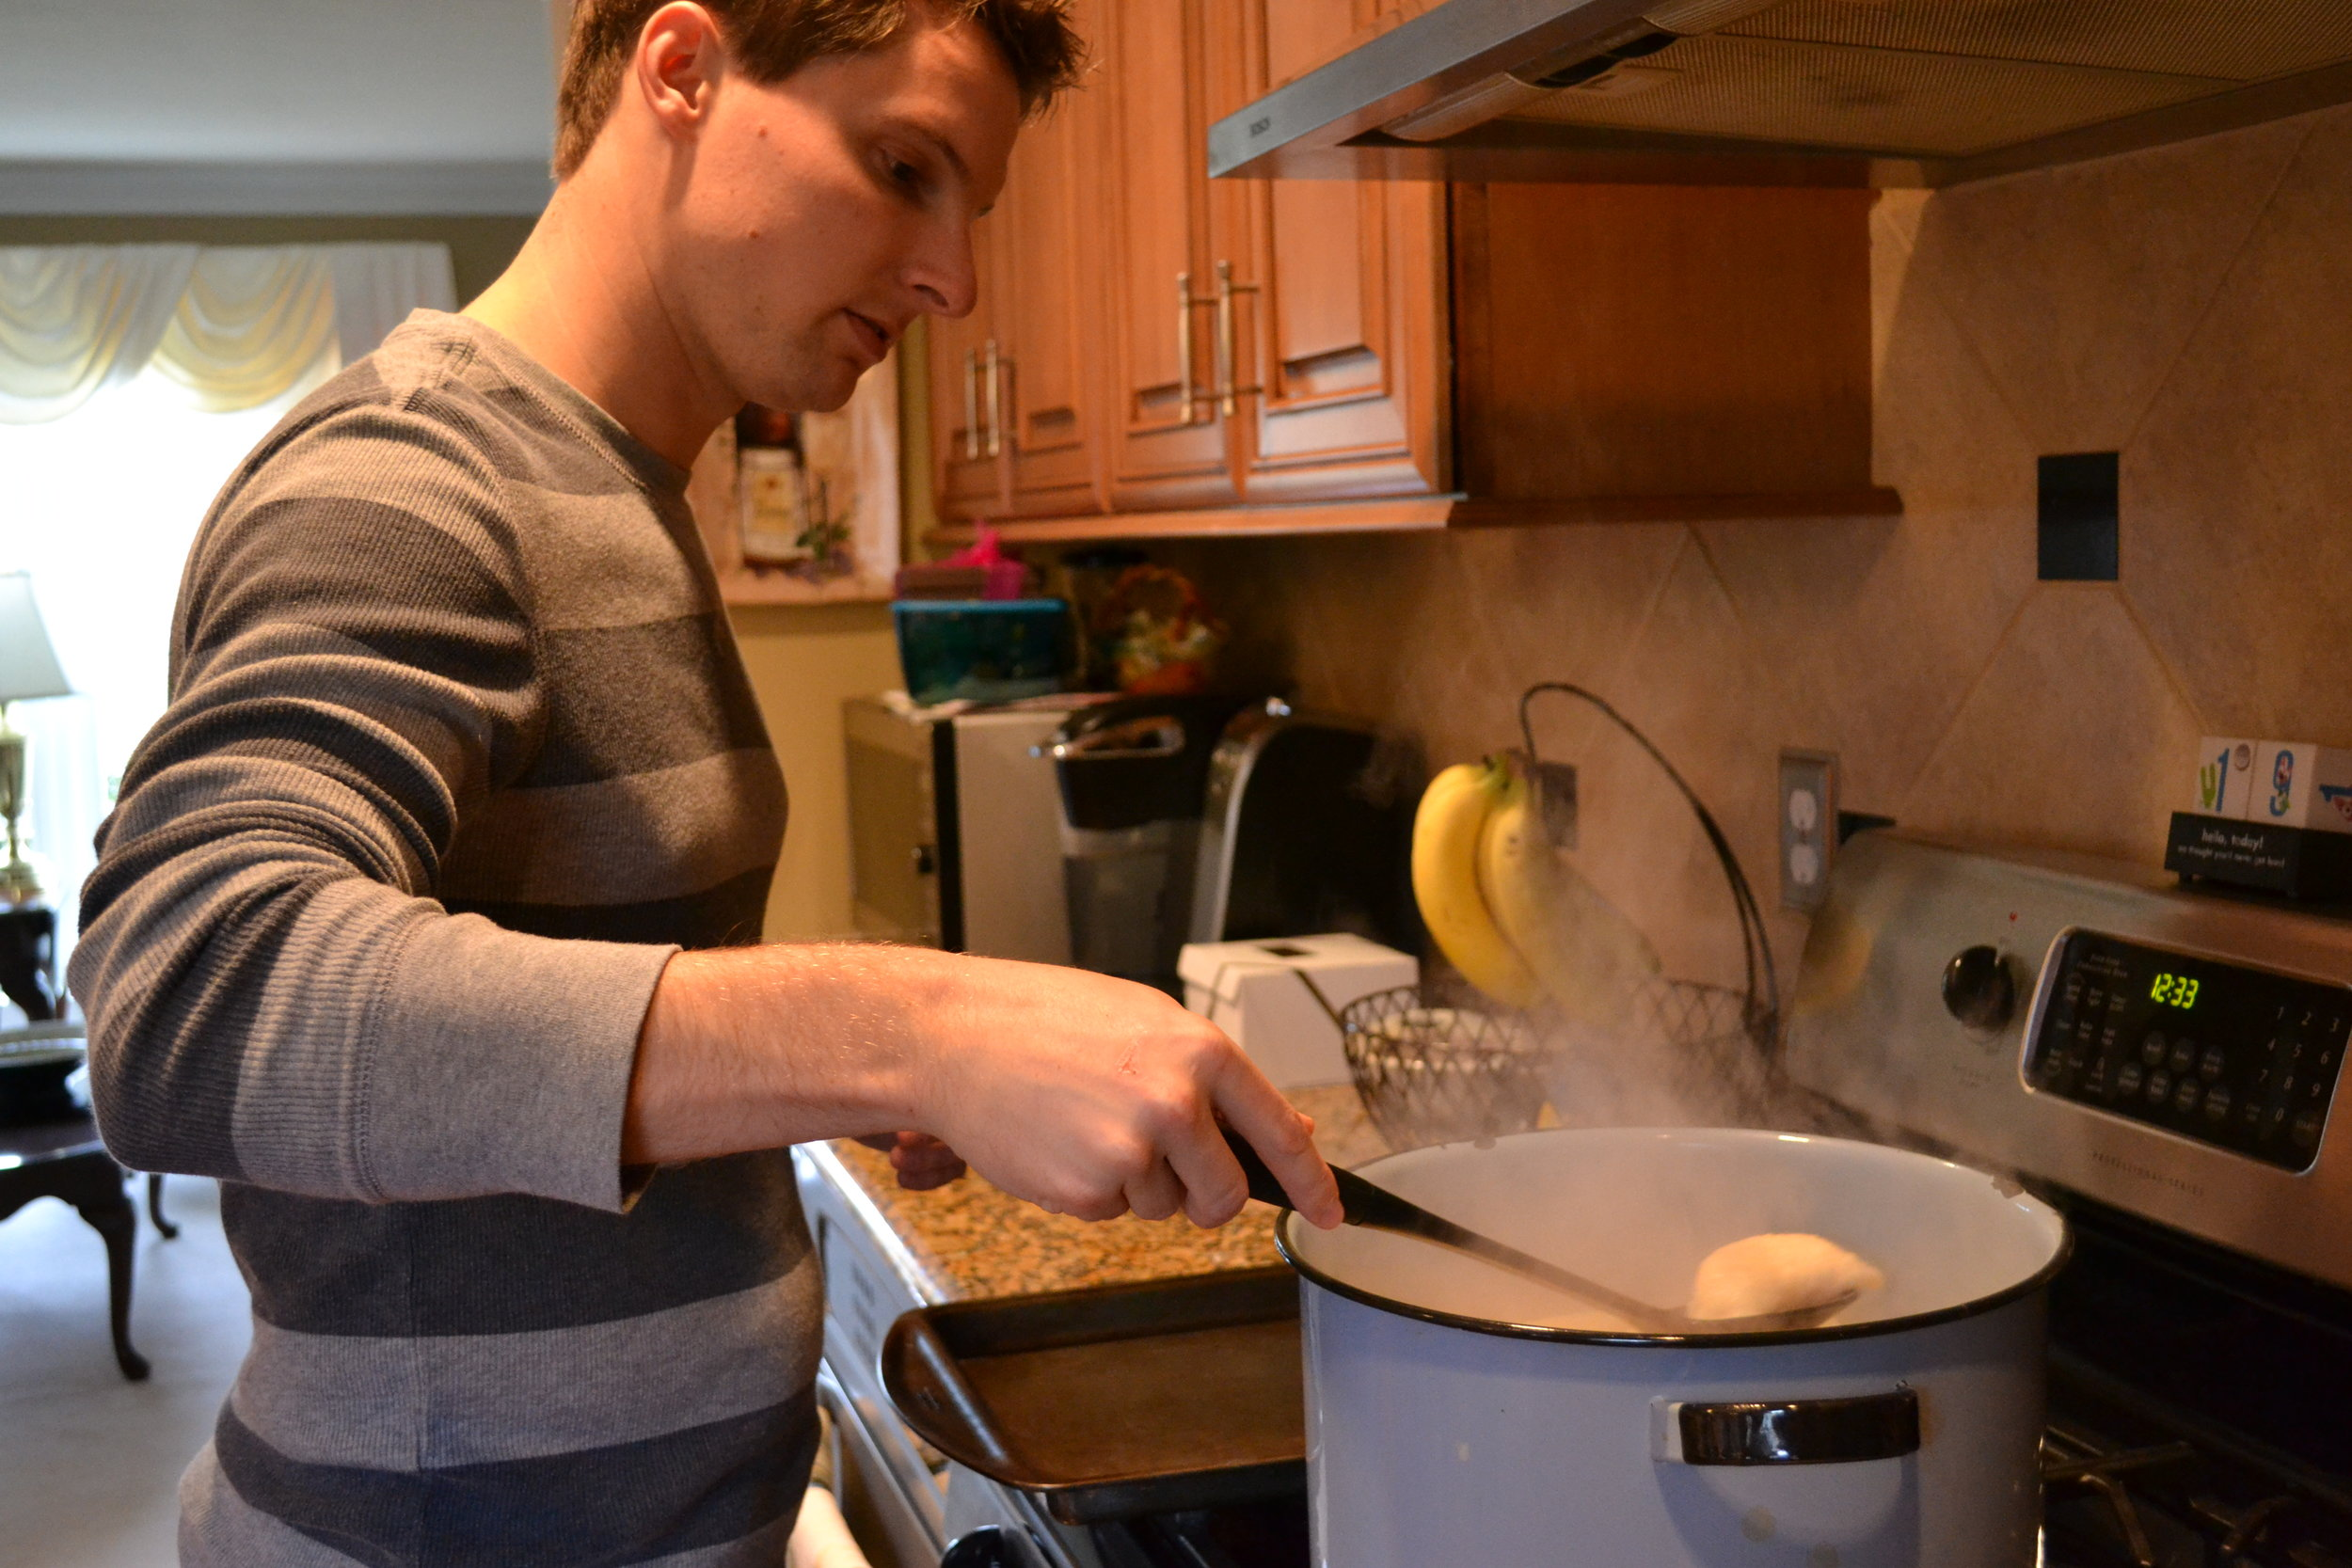 the fiance pulling pierogis out of the pot